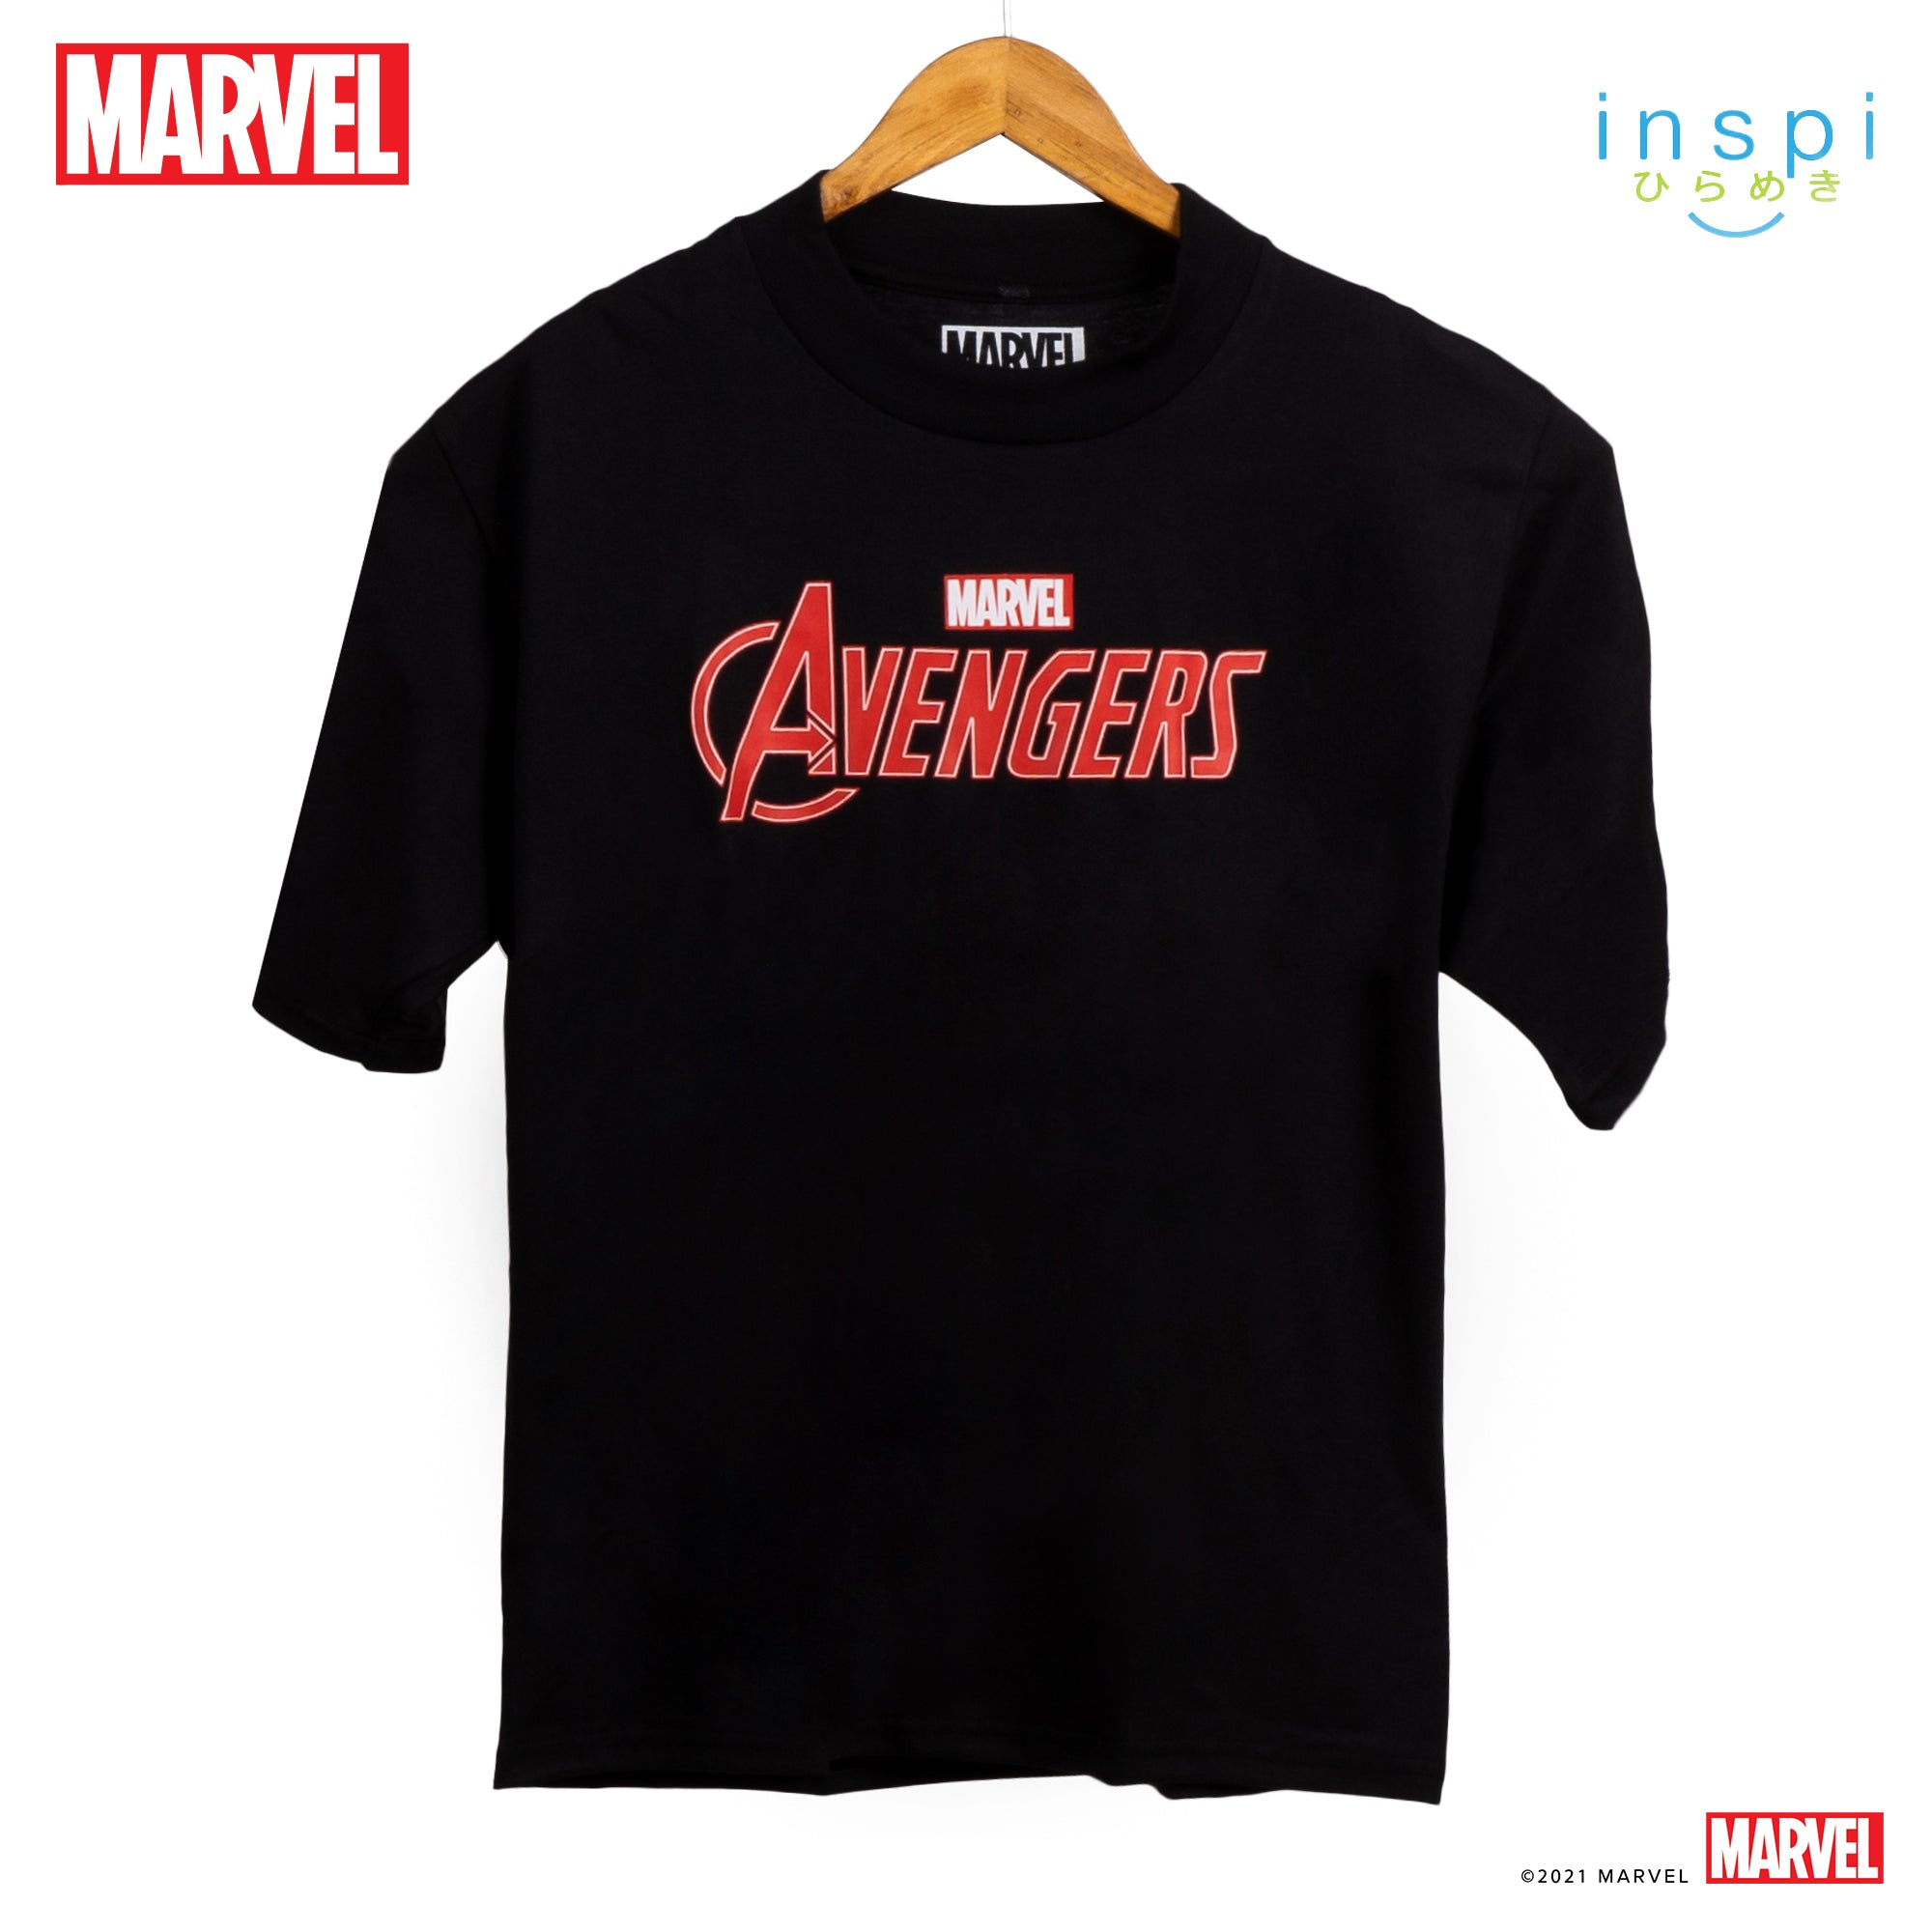 Marvel Loose Fit Avengers Graphic Korean Oversized Tshirt in Black Inspi Tee